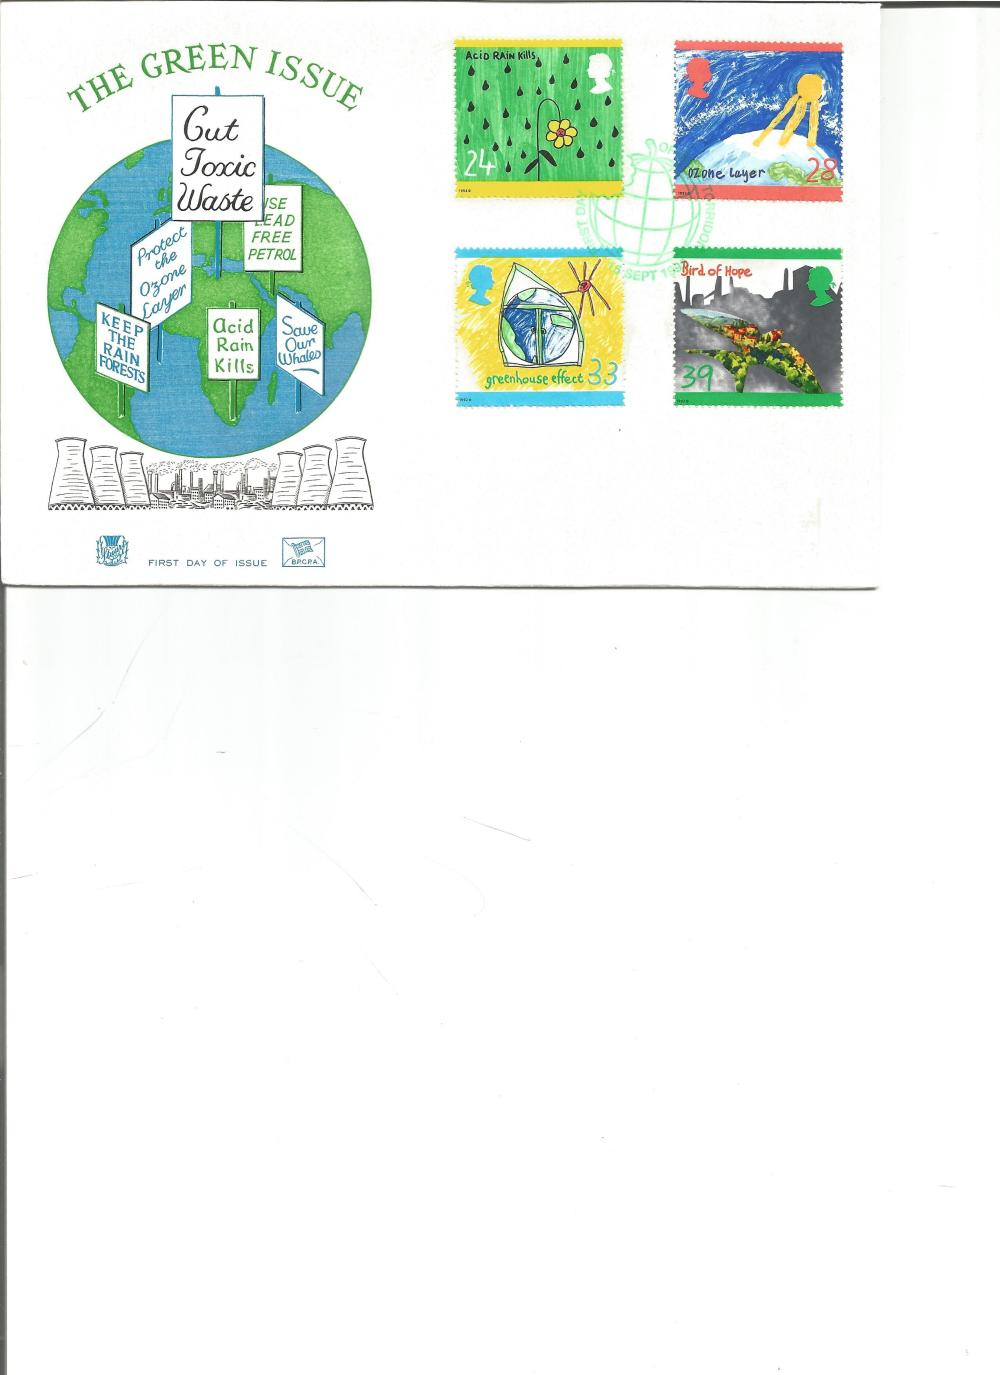 FDC The Green Issue c/w set of four commemorative stamps PM First Day of Issue 16th Sept 1992. We